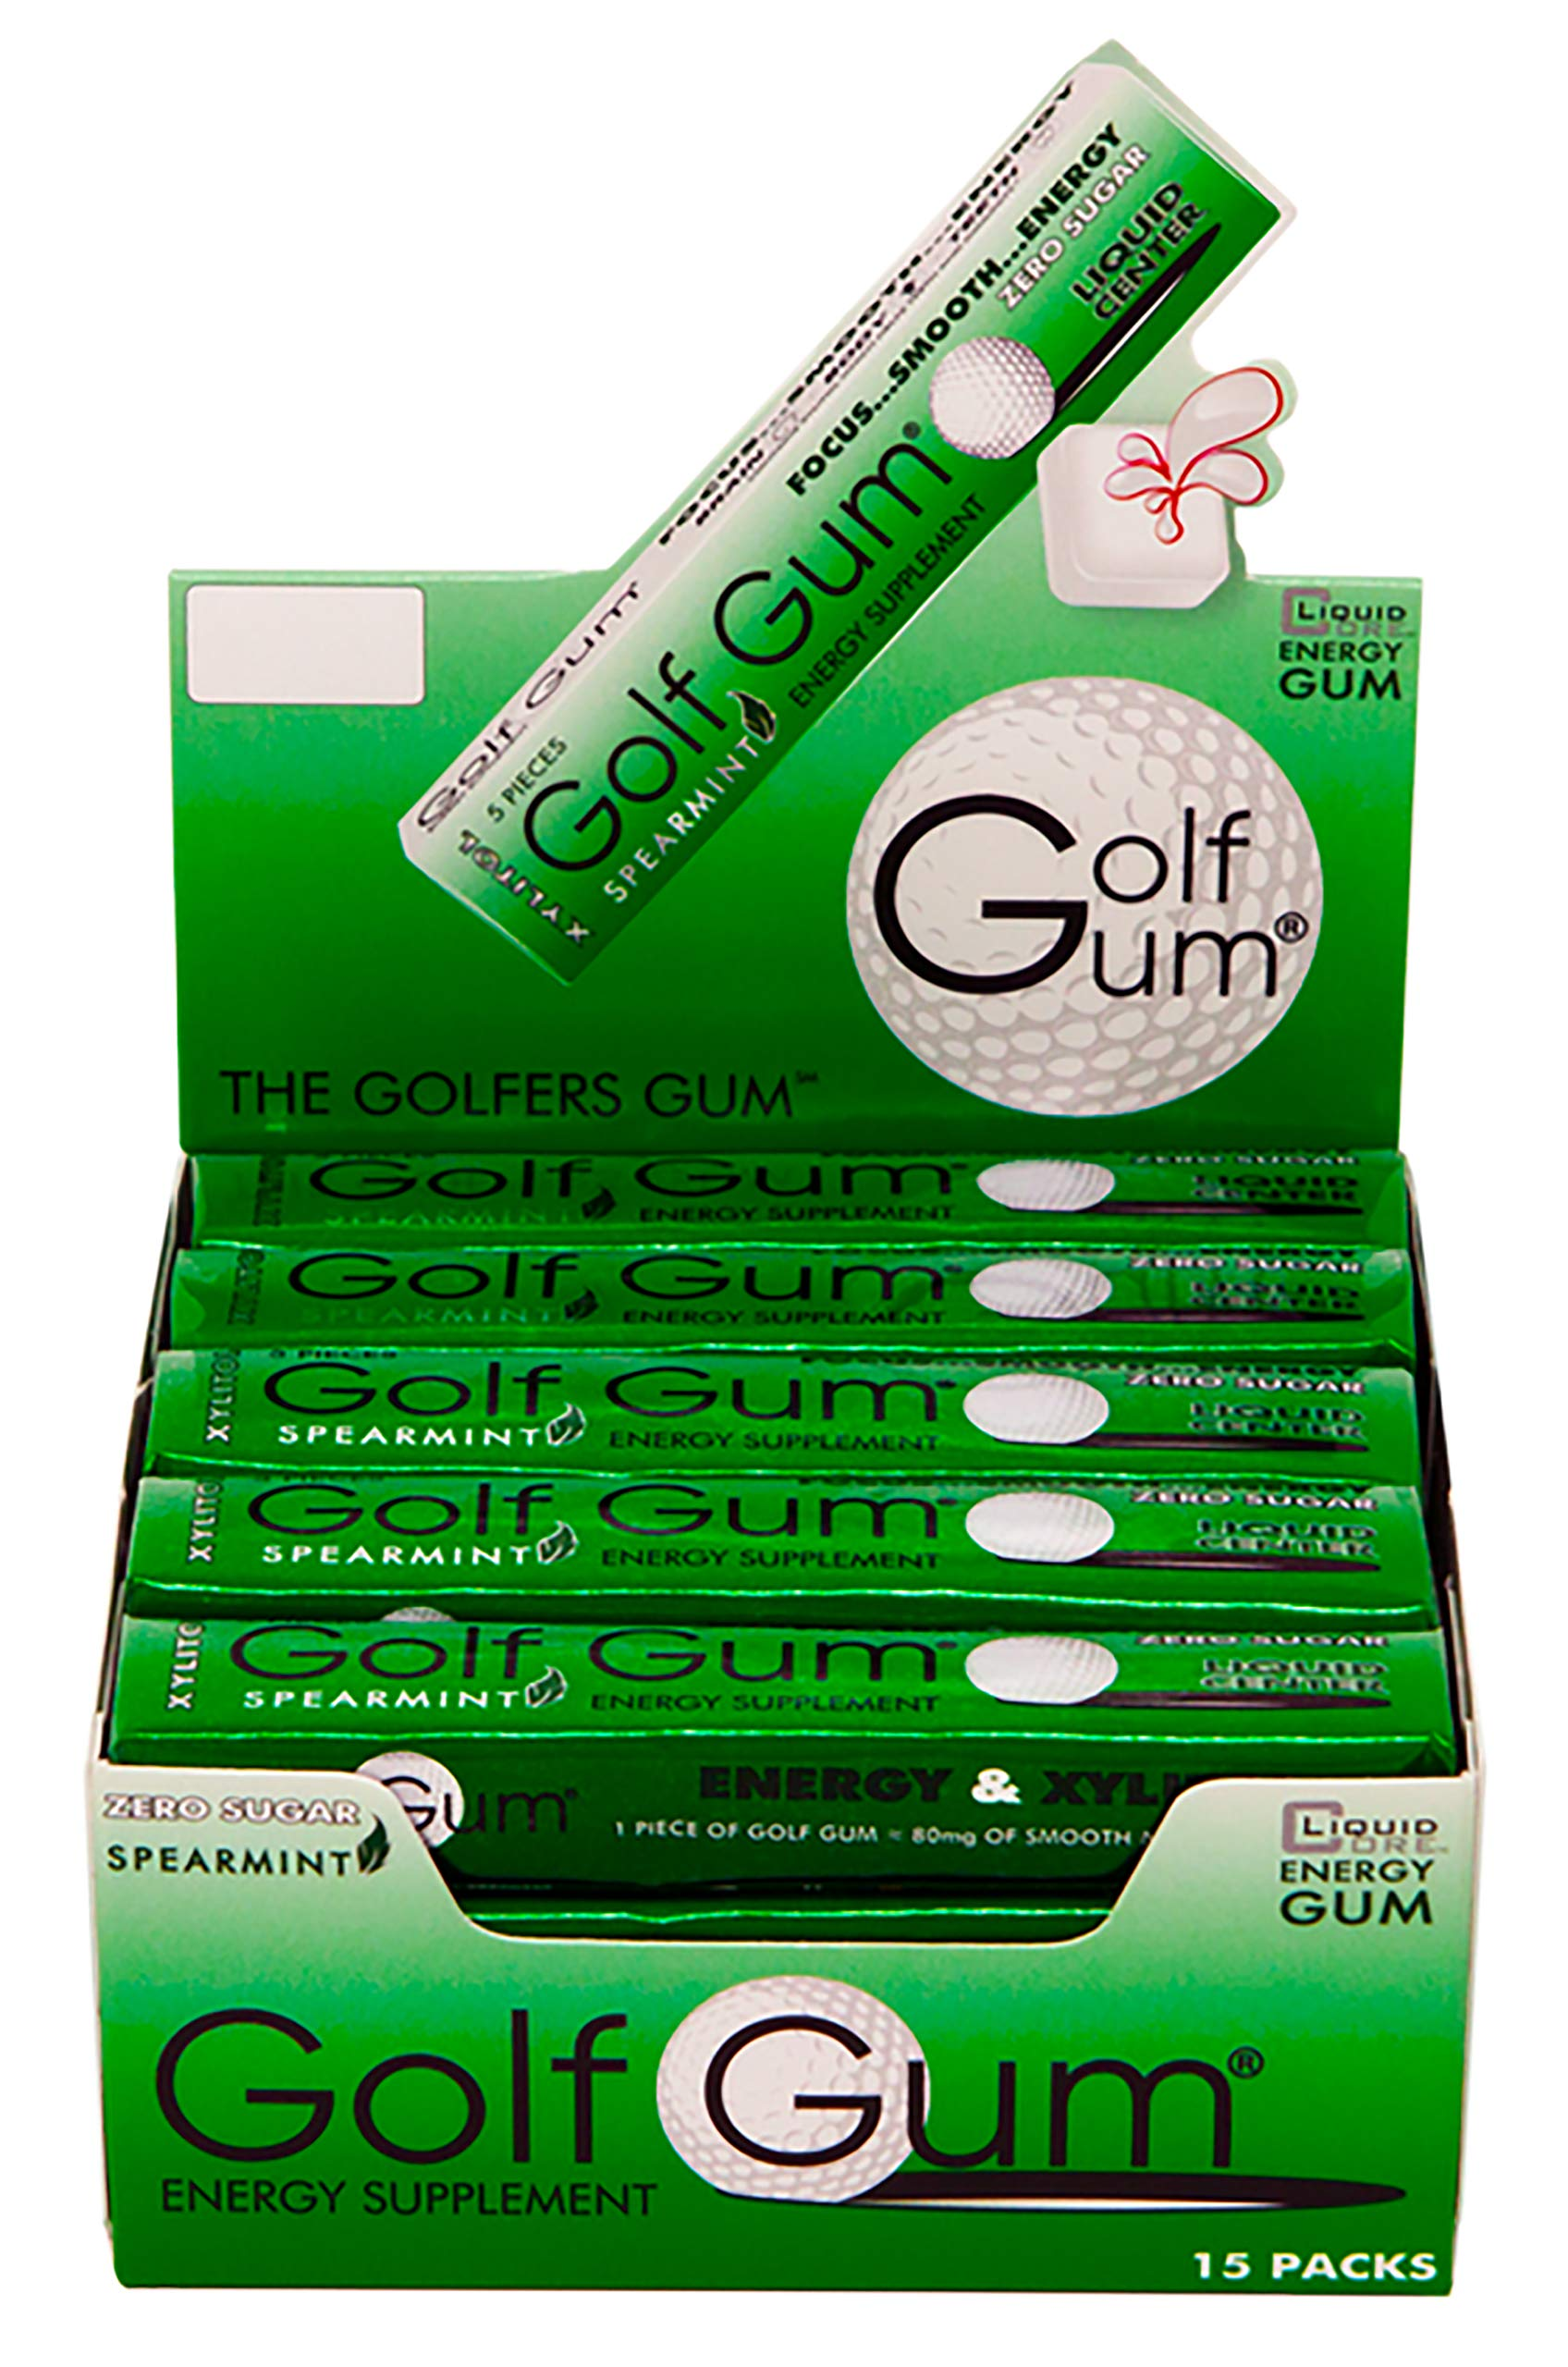 Golf Gum - The Golfers Gum - Liquid Core Xylitol Gum - Sugar-Free, Aspartame-Free, Caffeinated Gum - Spearmint - 5 Pieces of Gum Per Pack (15 Pack)